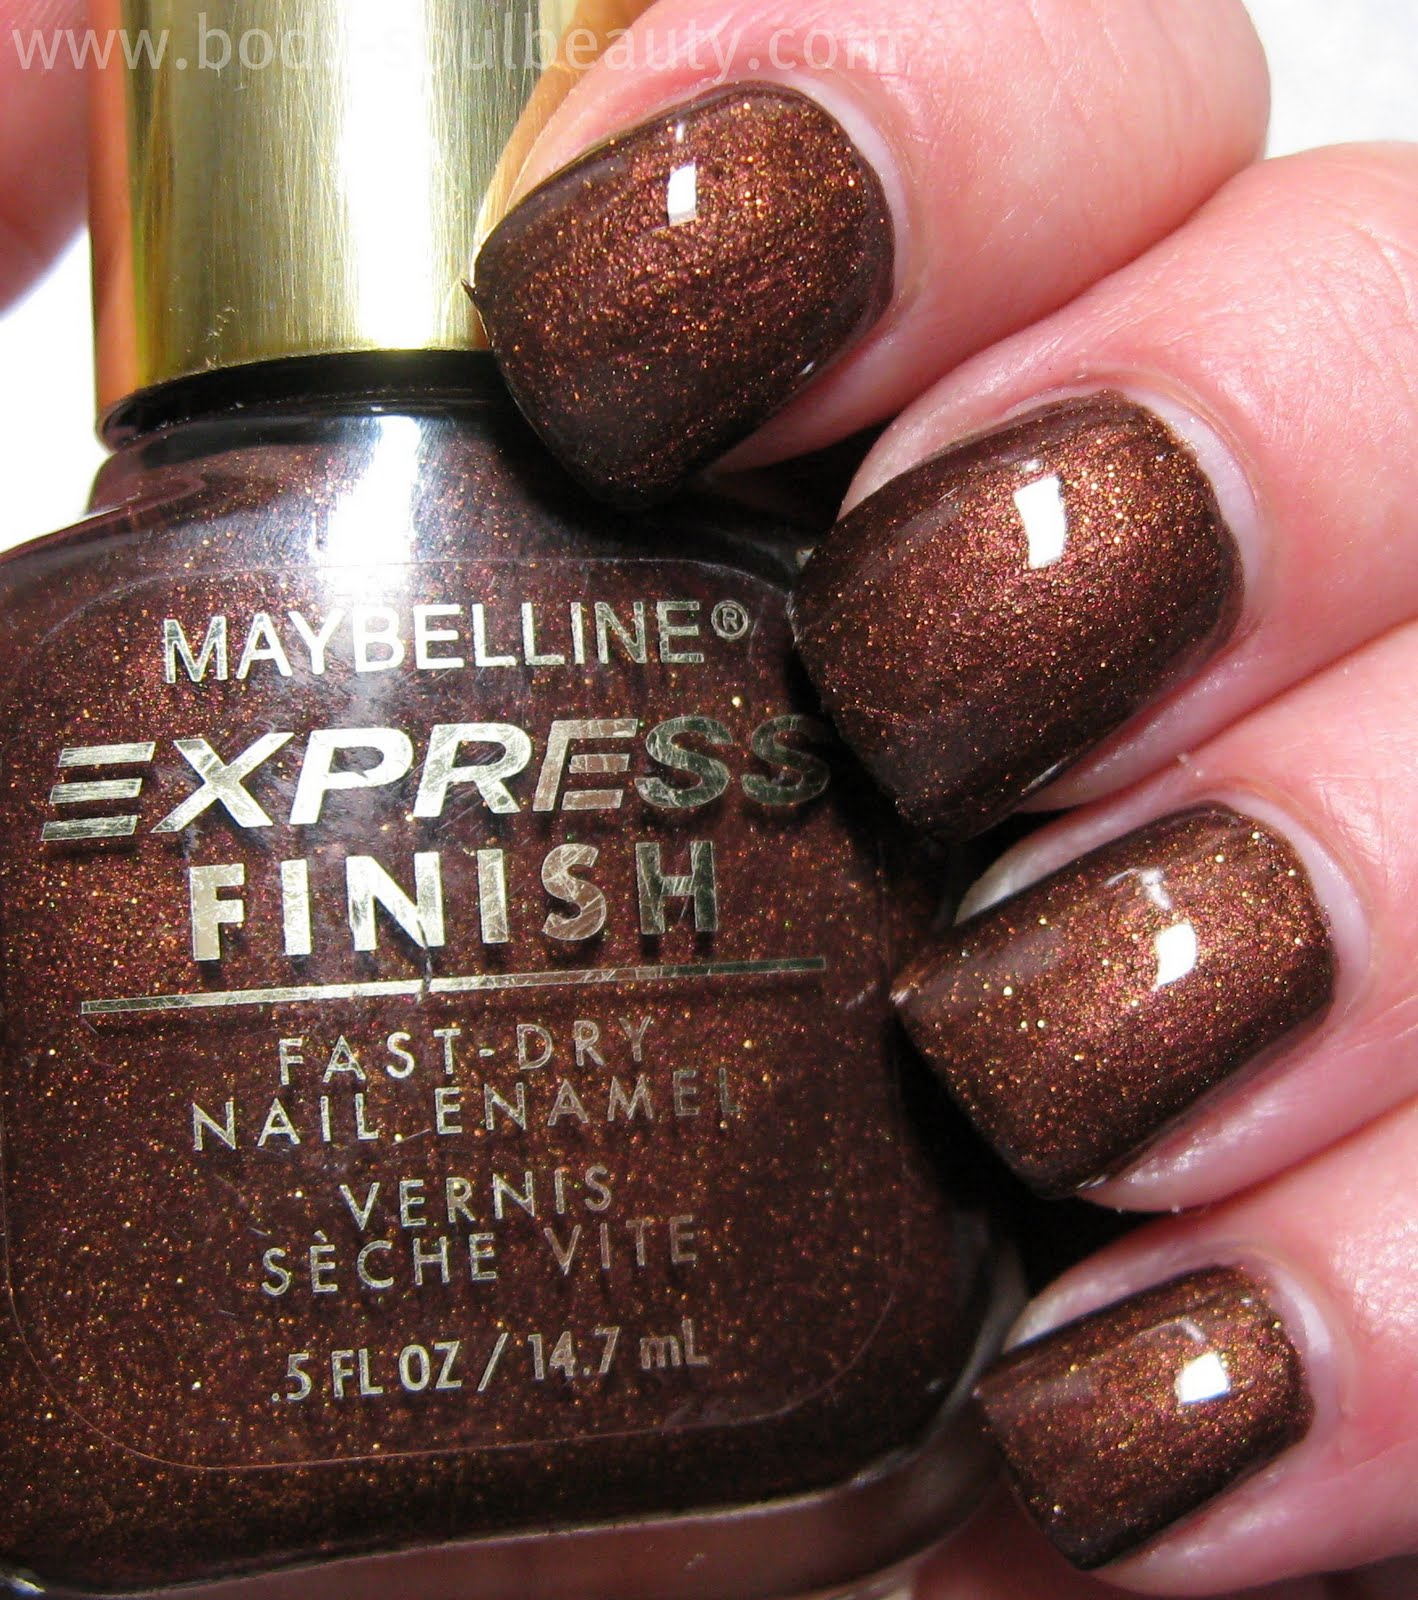 Old School Maybelline Express Finish Shades Body Soul